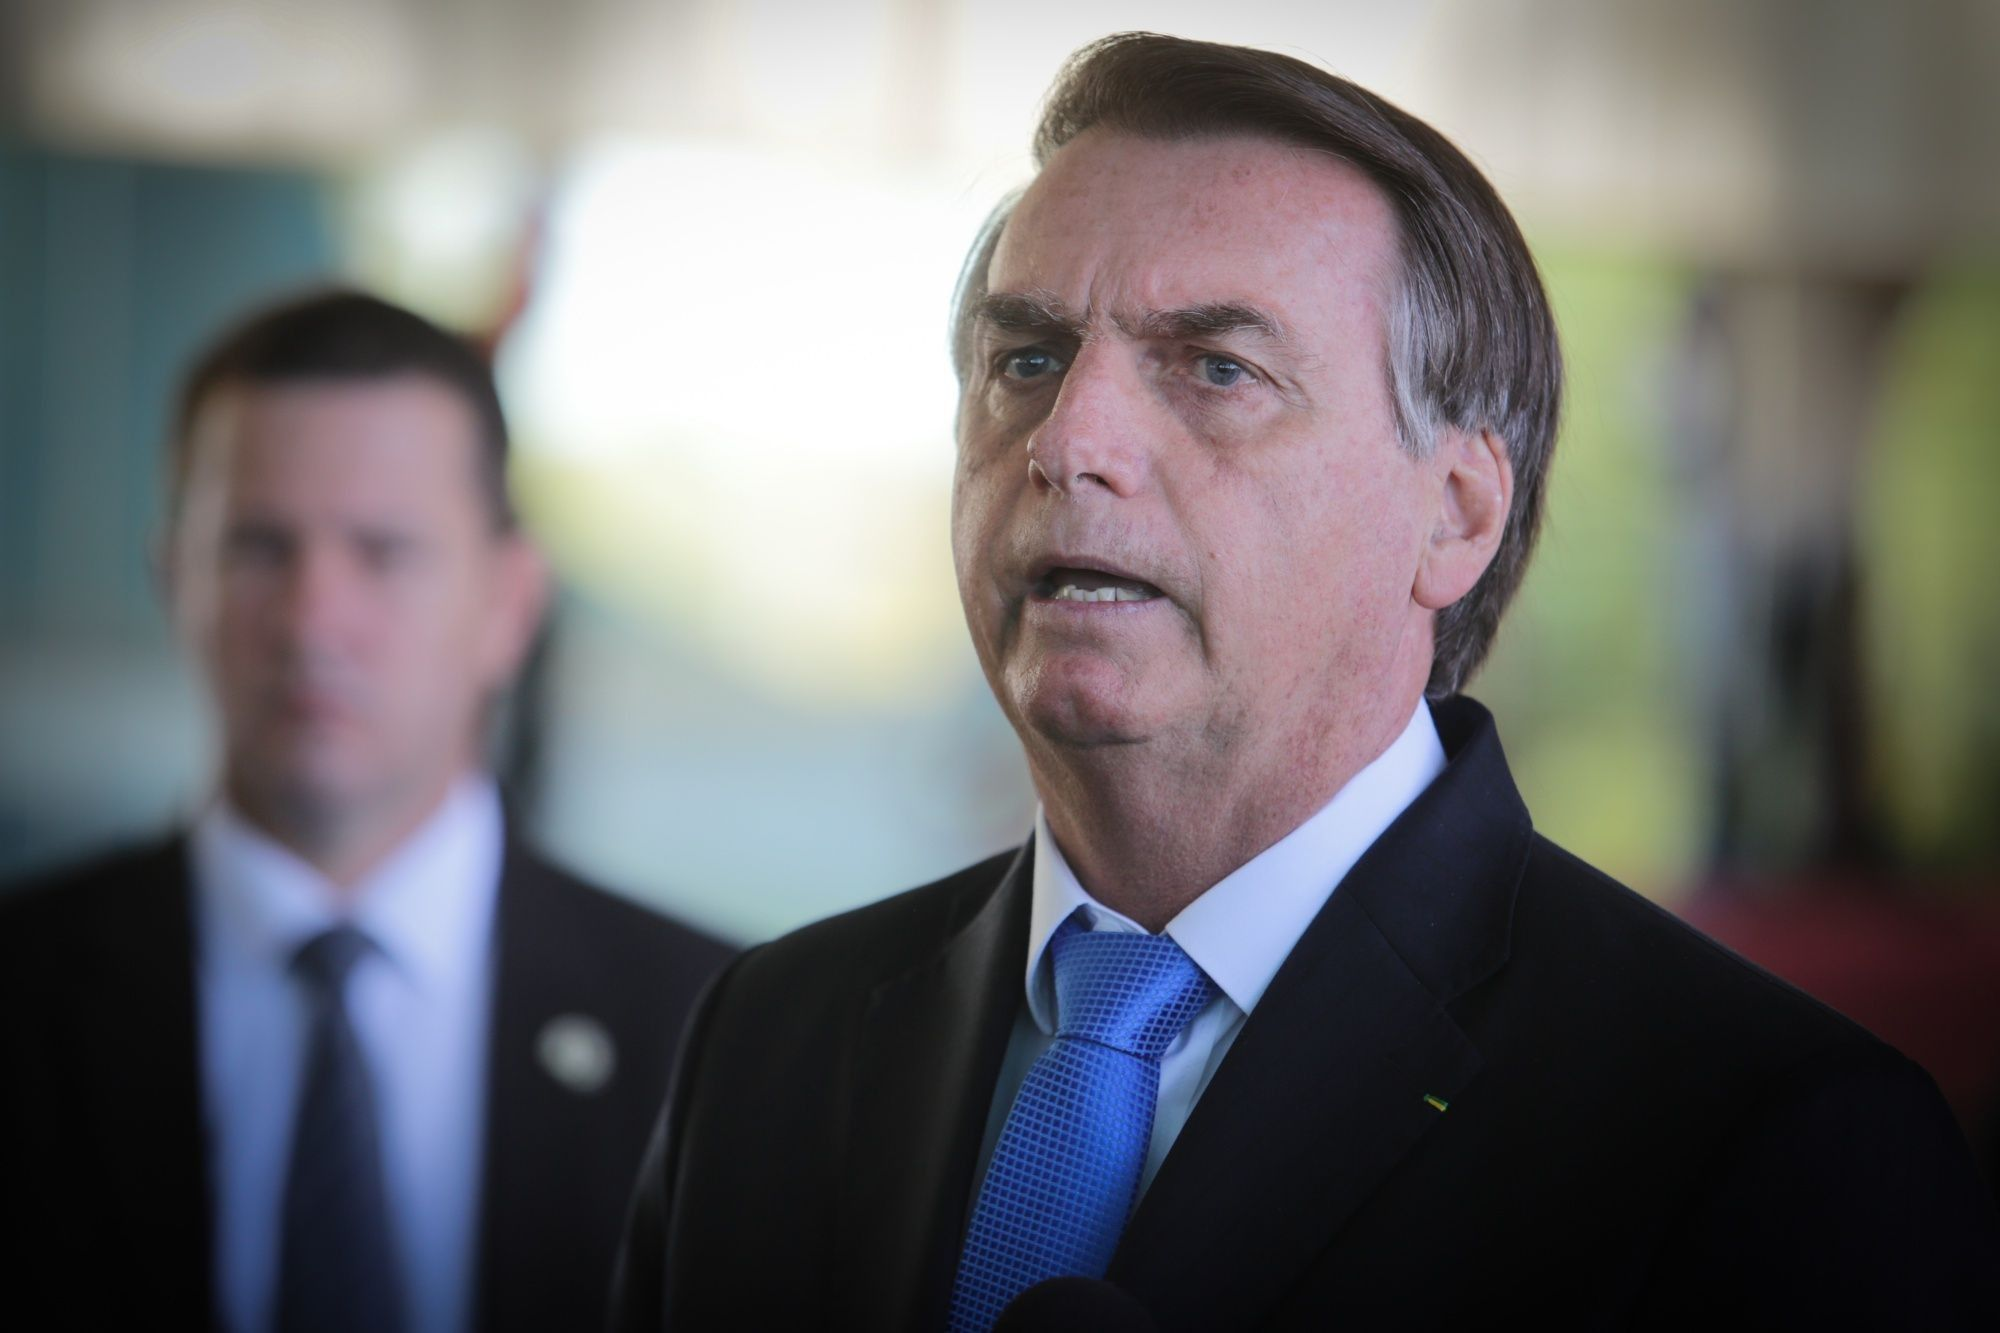 As Amazon Burns, Brazil's Bolsonaro to Address UN on Environment